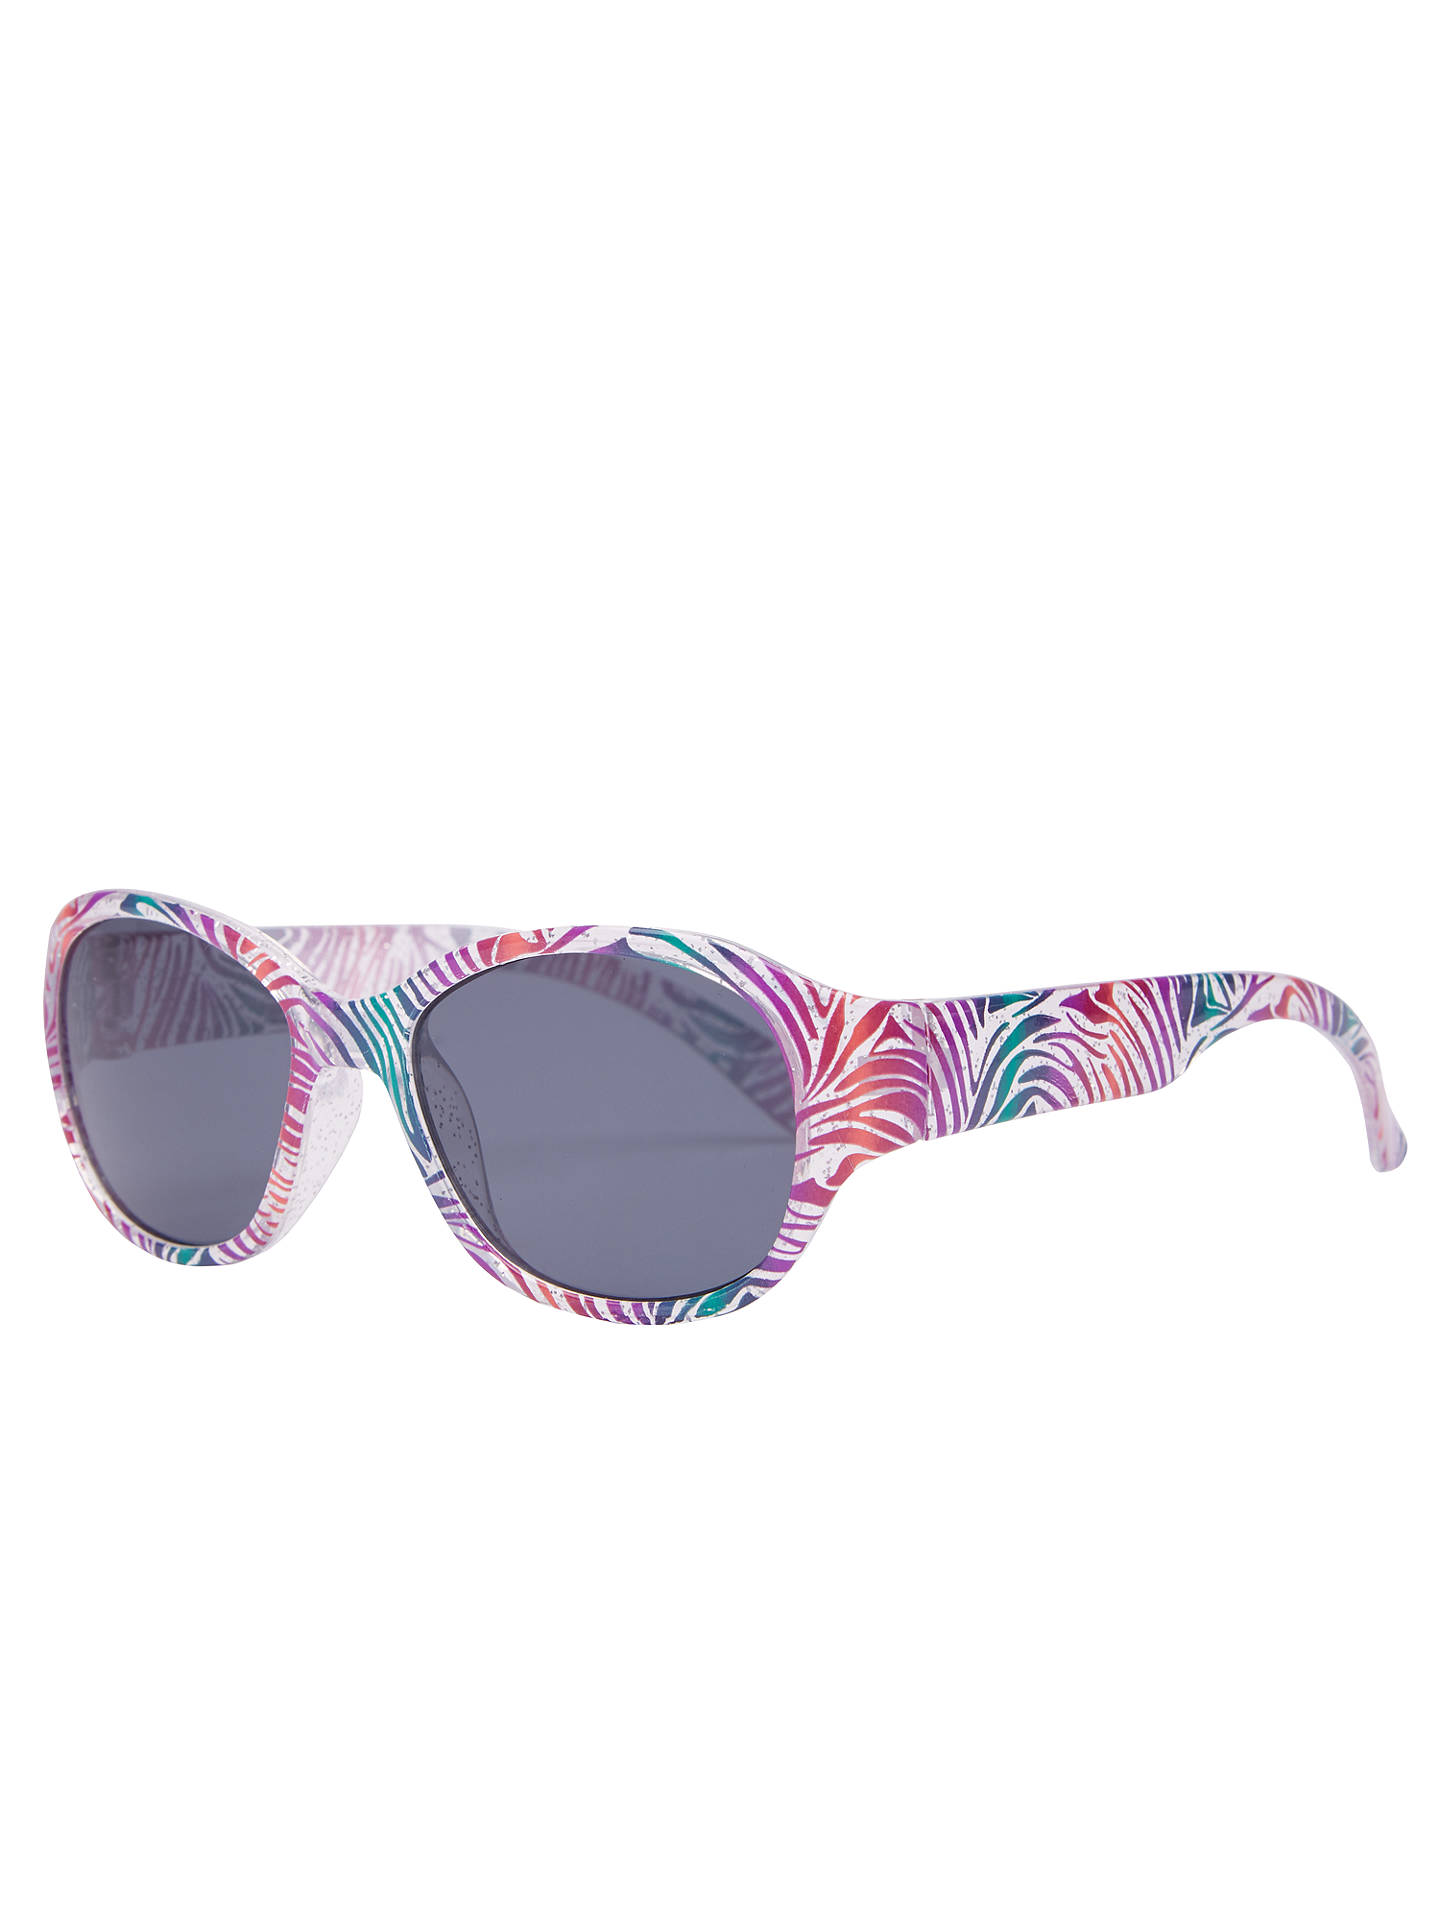 BuyJohn Lewis & Partners Children's Glitter Animal Print Sunglasses, Multi Online at johnlewis.com